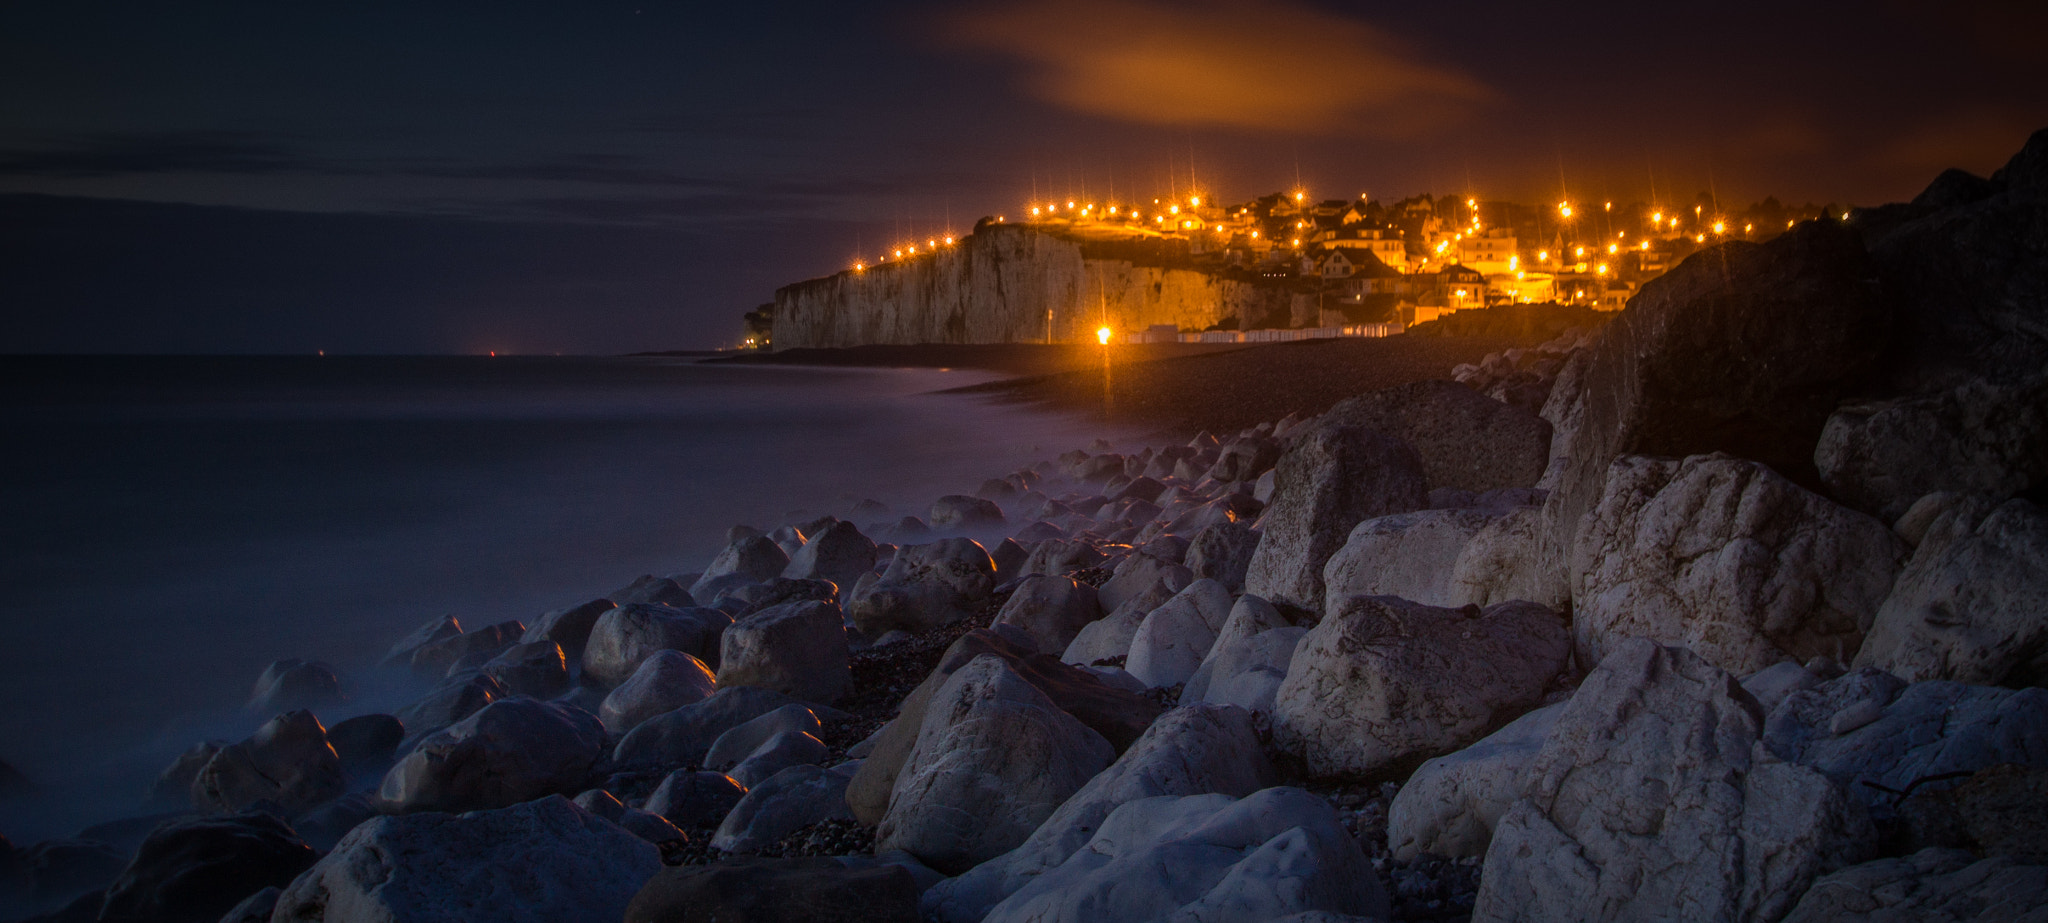 Photograph living on the edge (in the dark) by Thierry Matsaert on 500px